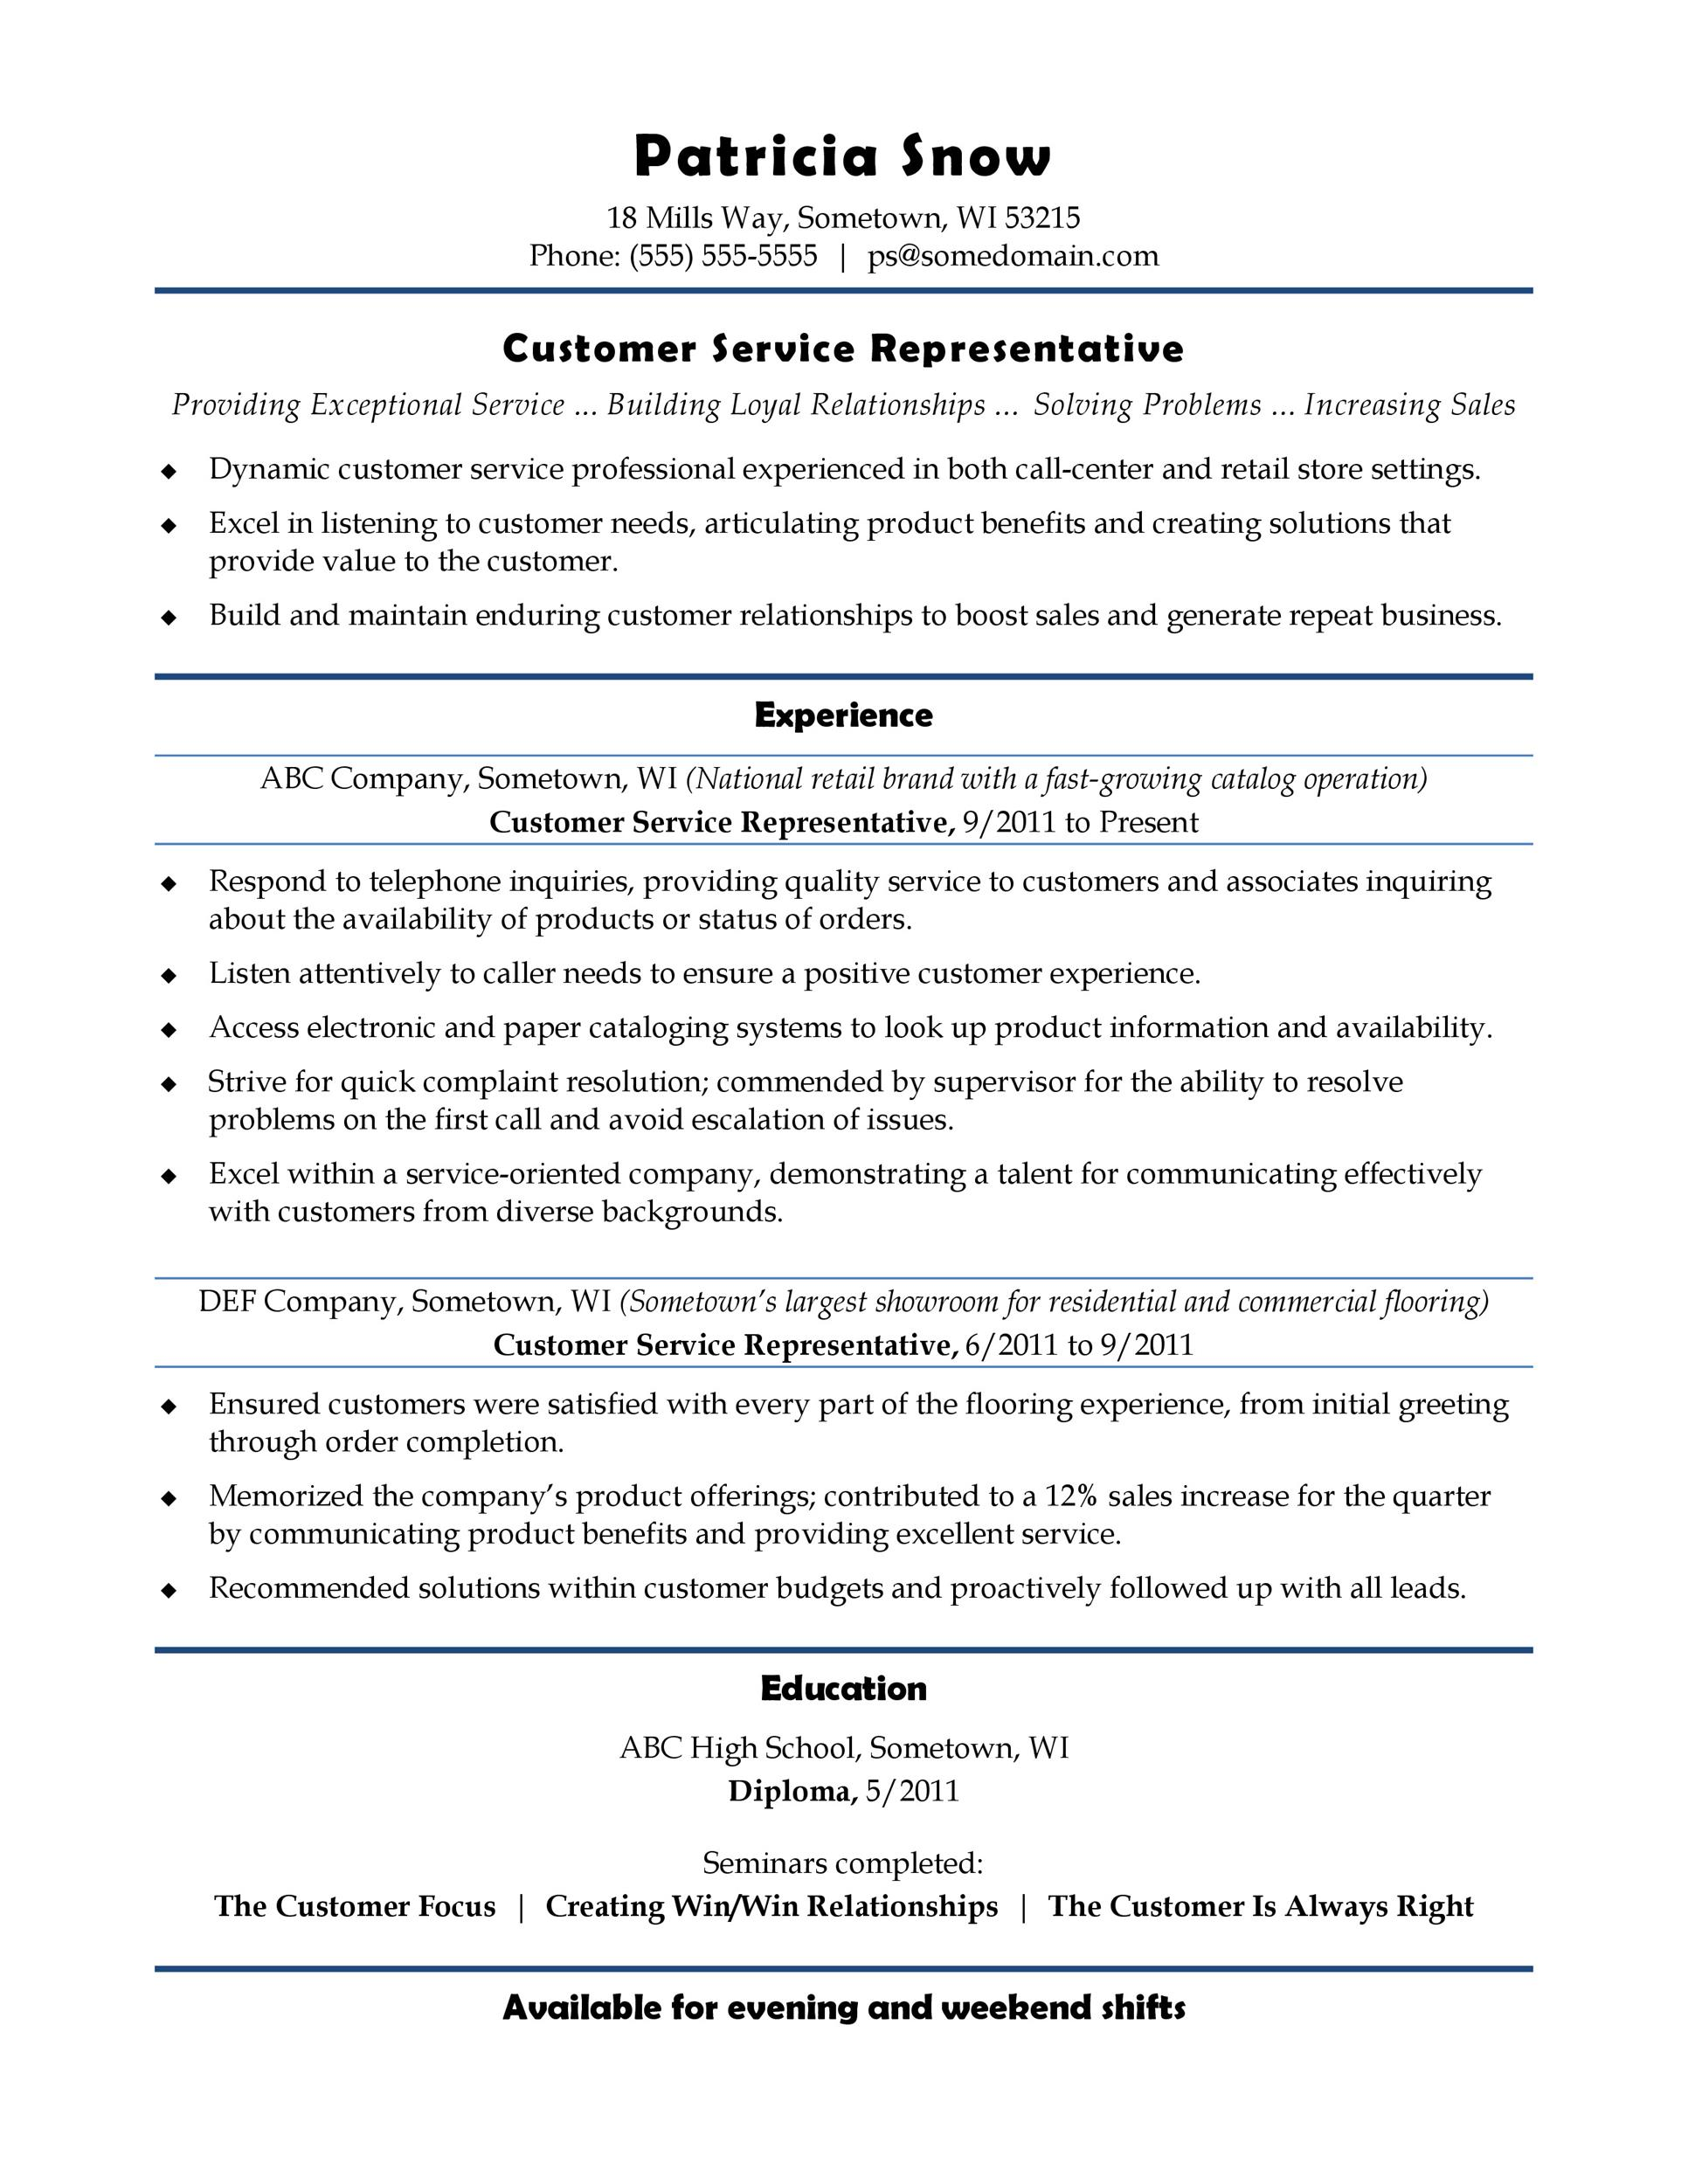 free resume samples for customer service jobs